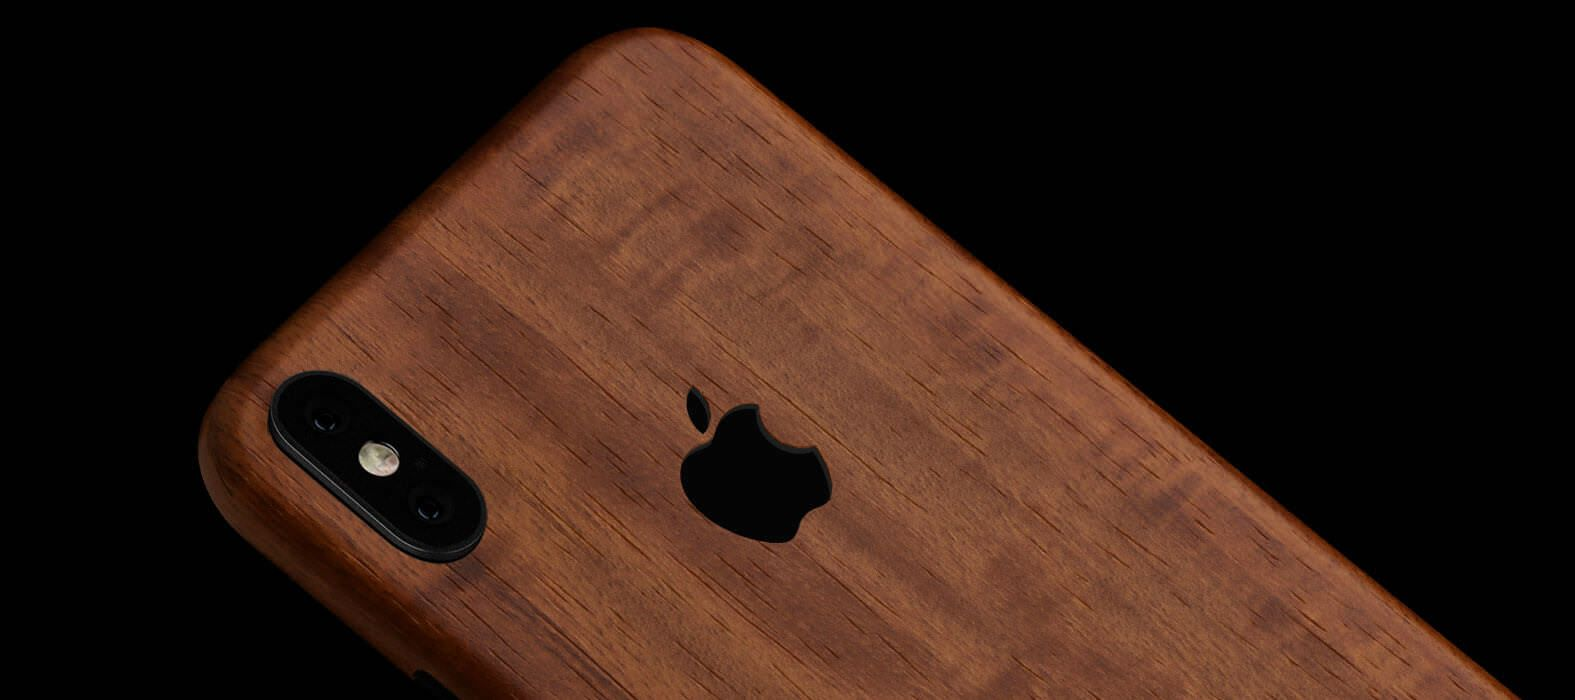 iPhone X Skins, Wraps & decals Teak Wood